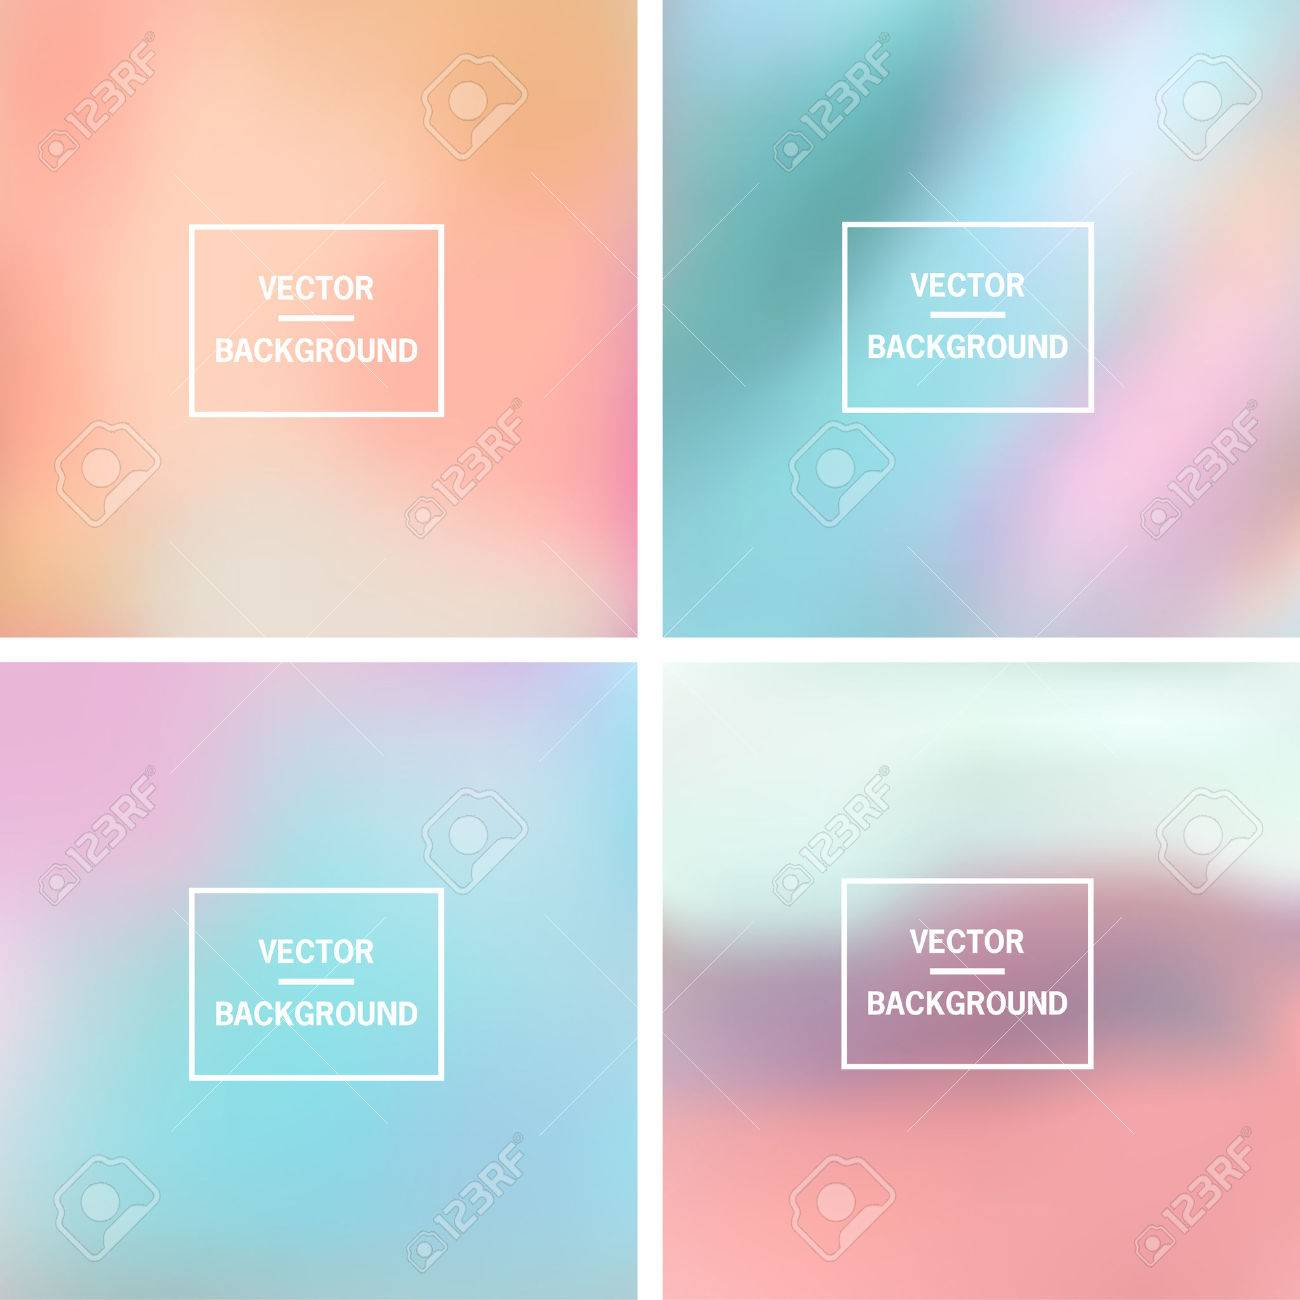 Abstract colorful blurred vector backgrounds. Elements for your website or presentation. - 46960889